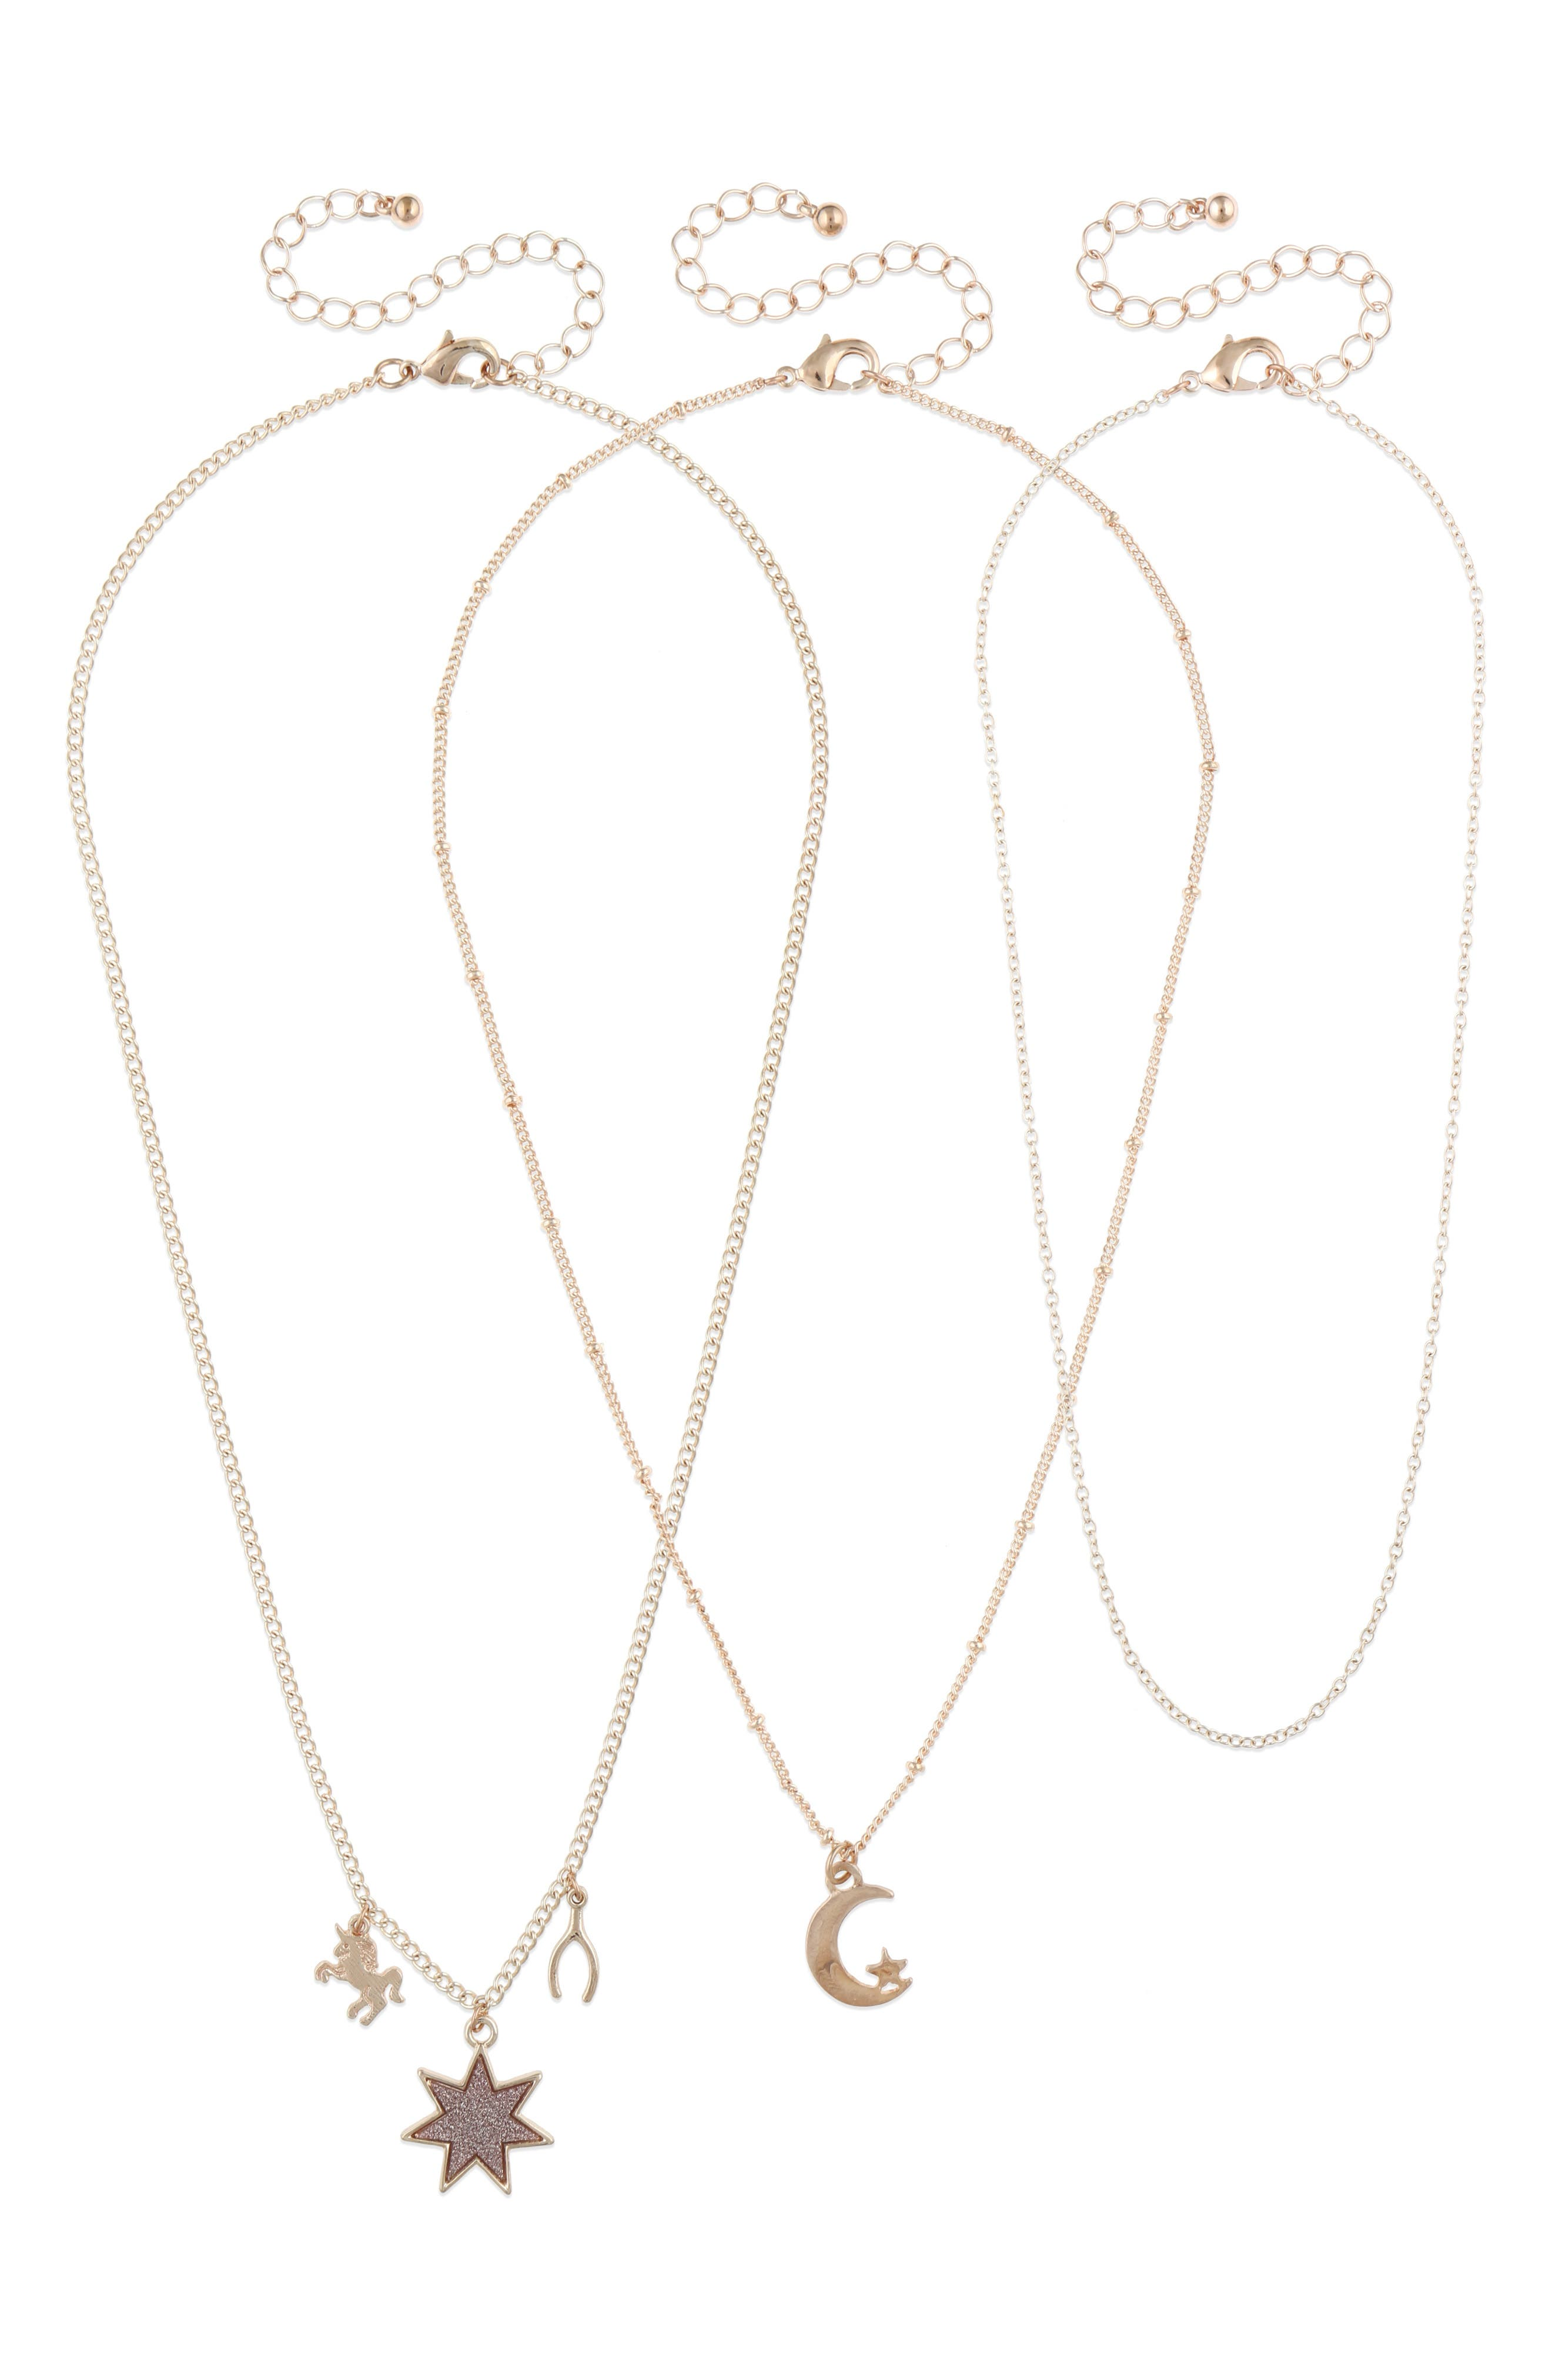 Set of 3 Charm Necklaces,                             Main thumbnail 1, color,                             ROSE GOLD